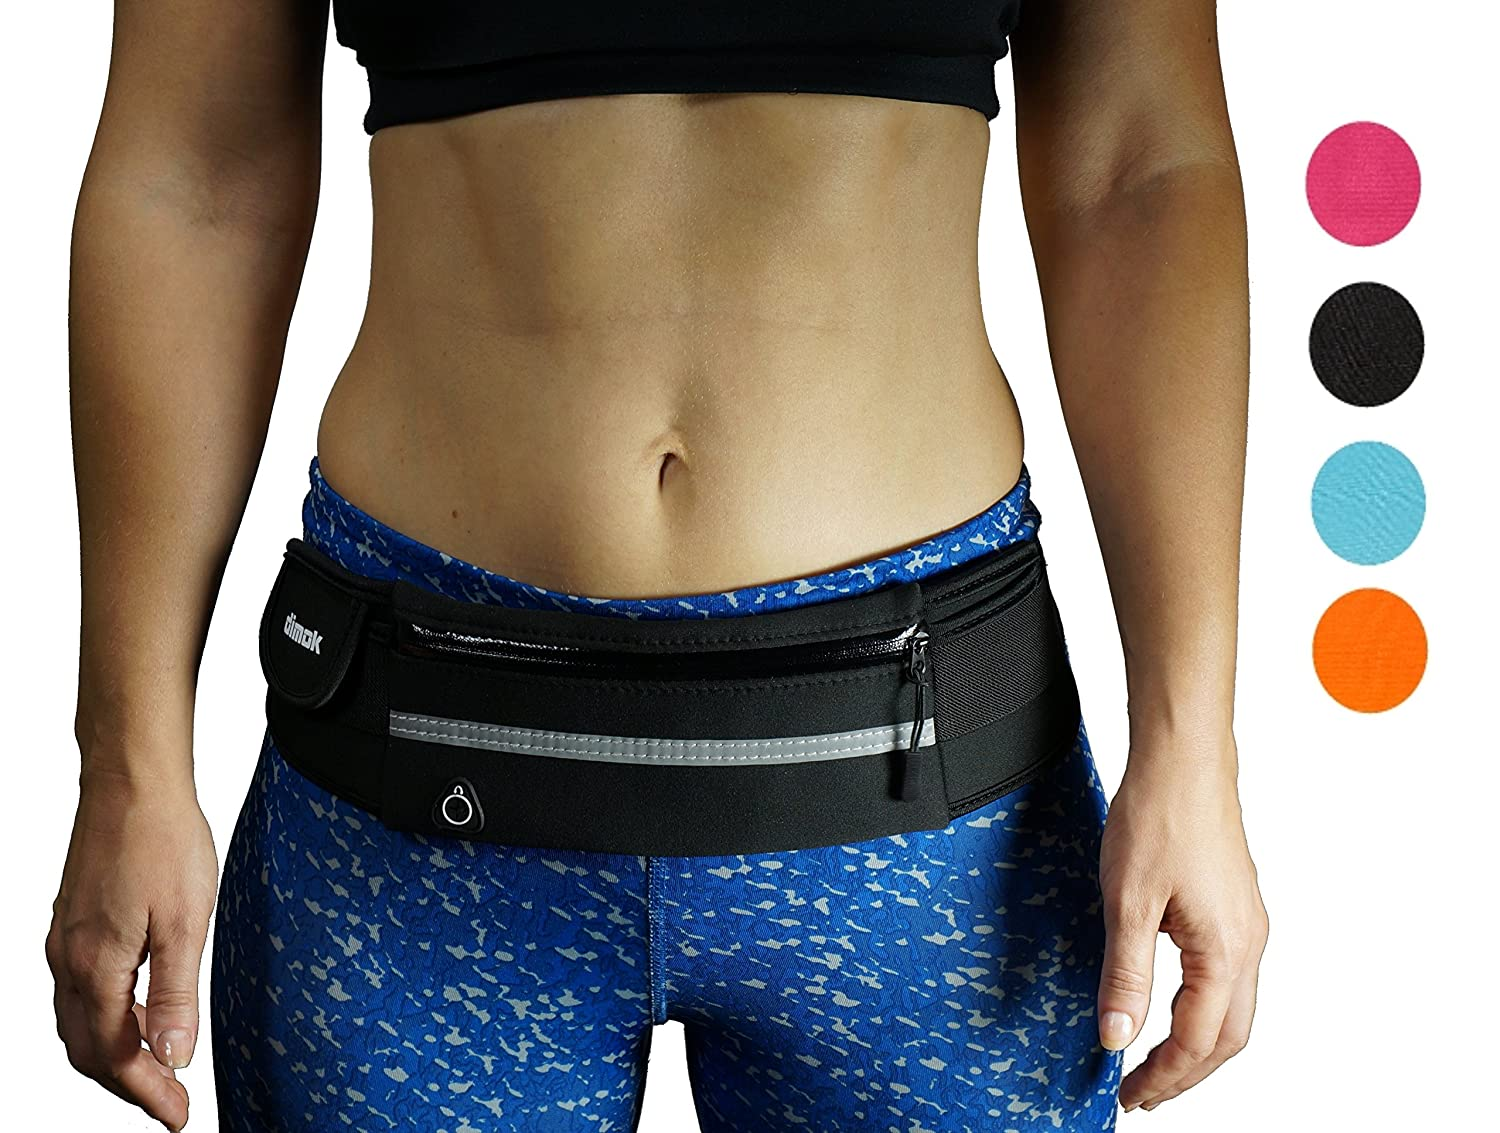 Ultra Running Waist Packs, Waist Bags and Waist Belts / Pouches for Ultramarathon Runners Comfort, Fit, Function, Freedom of Movement, Ease of Use, and Customizable Utility are inter-related attributes of UltrAspire fluctuatin.gqr: Keith Godden.